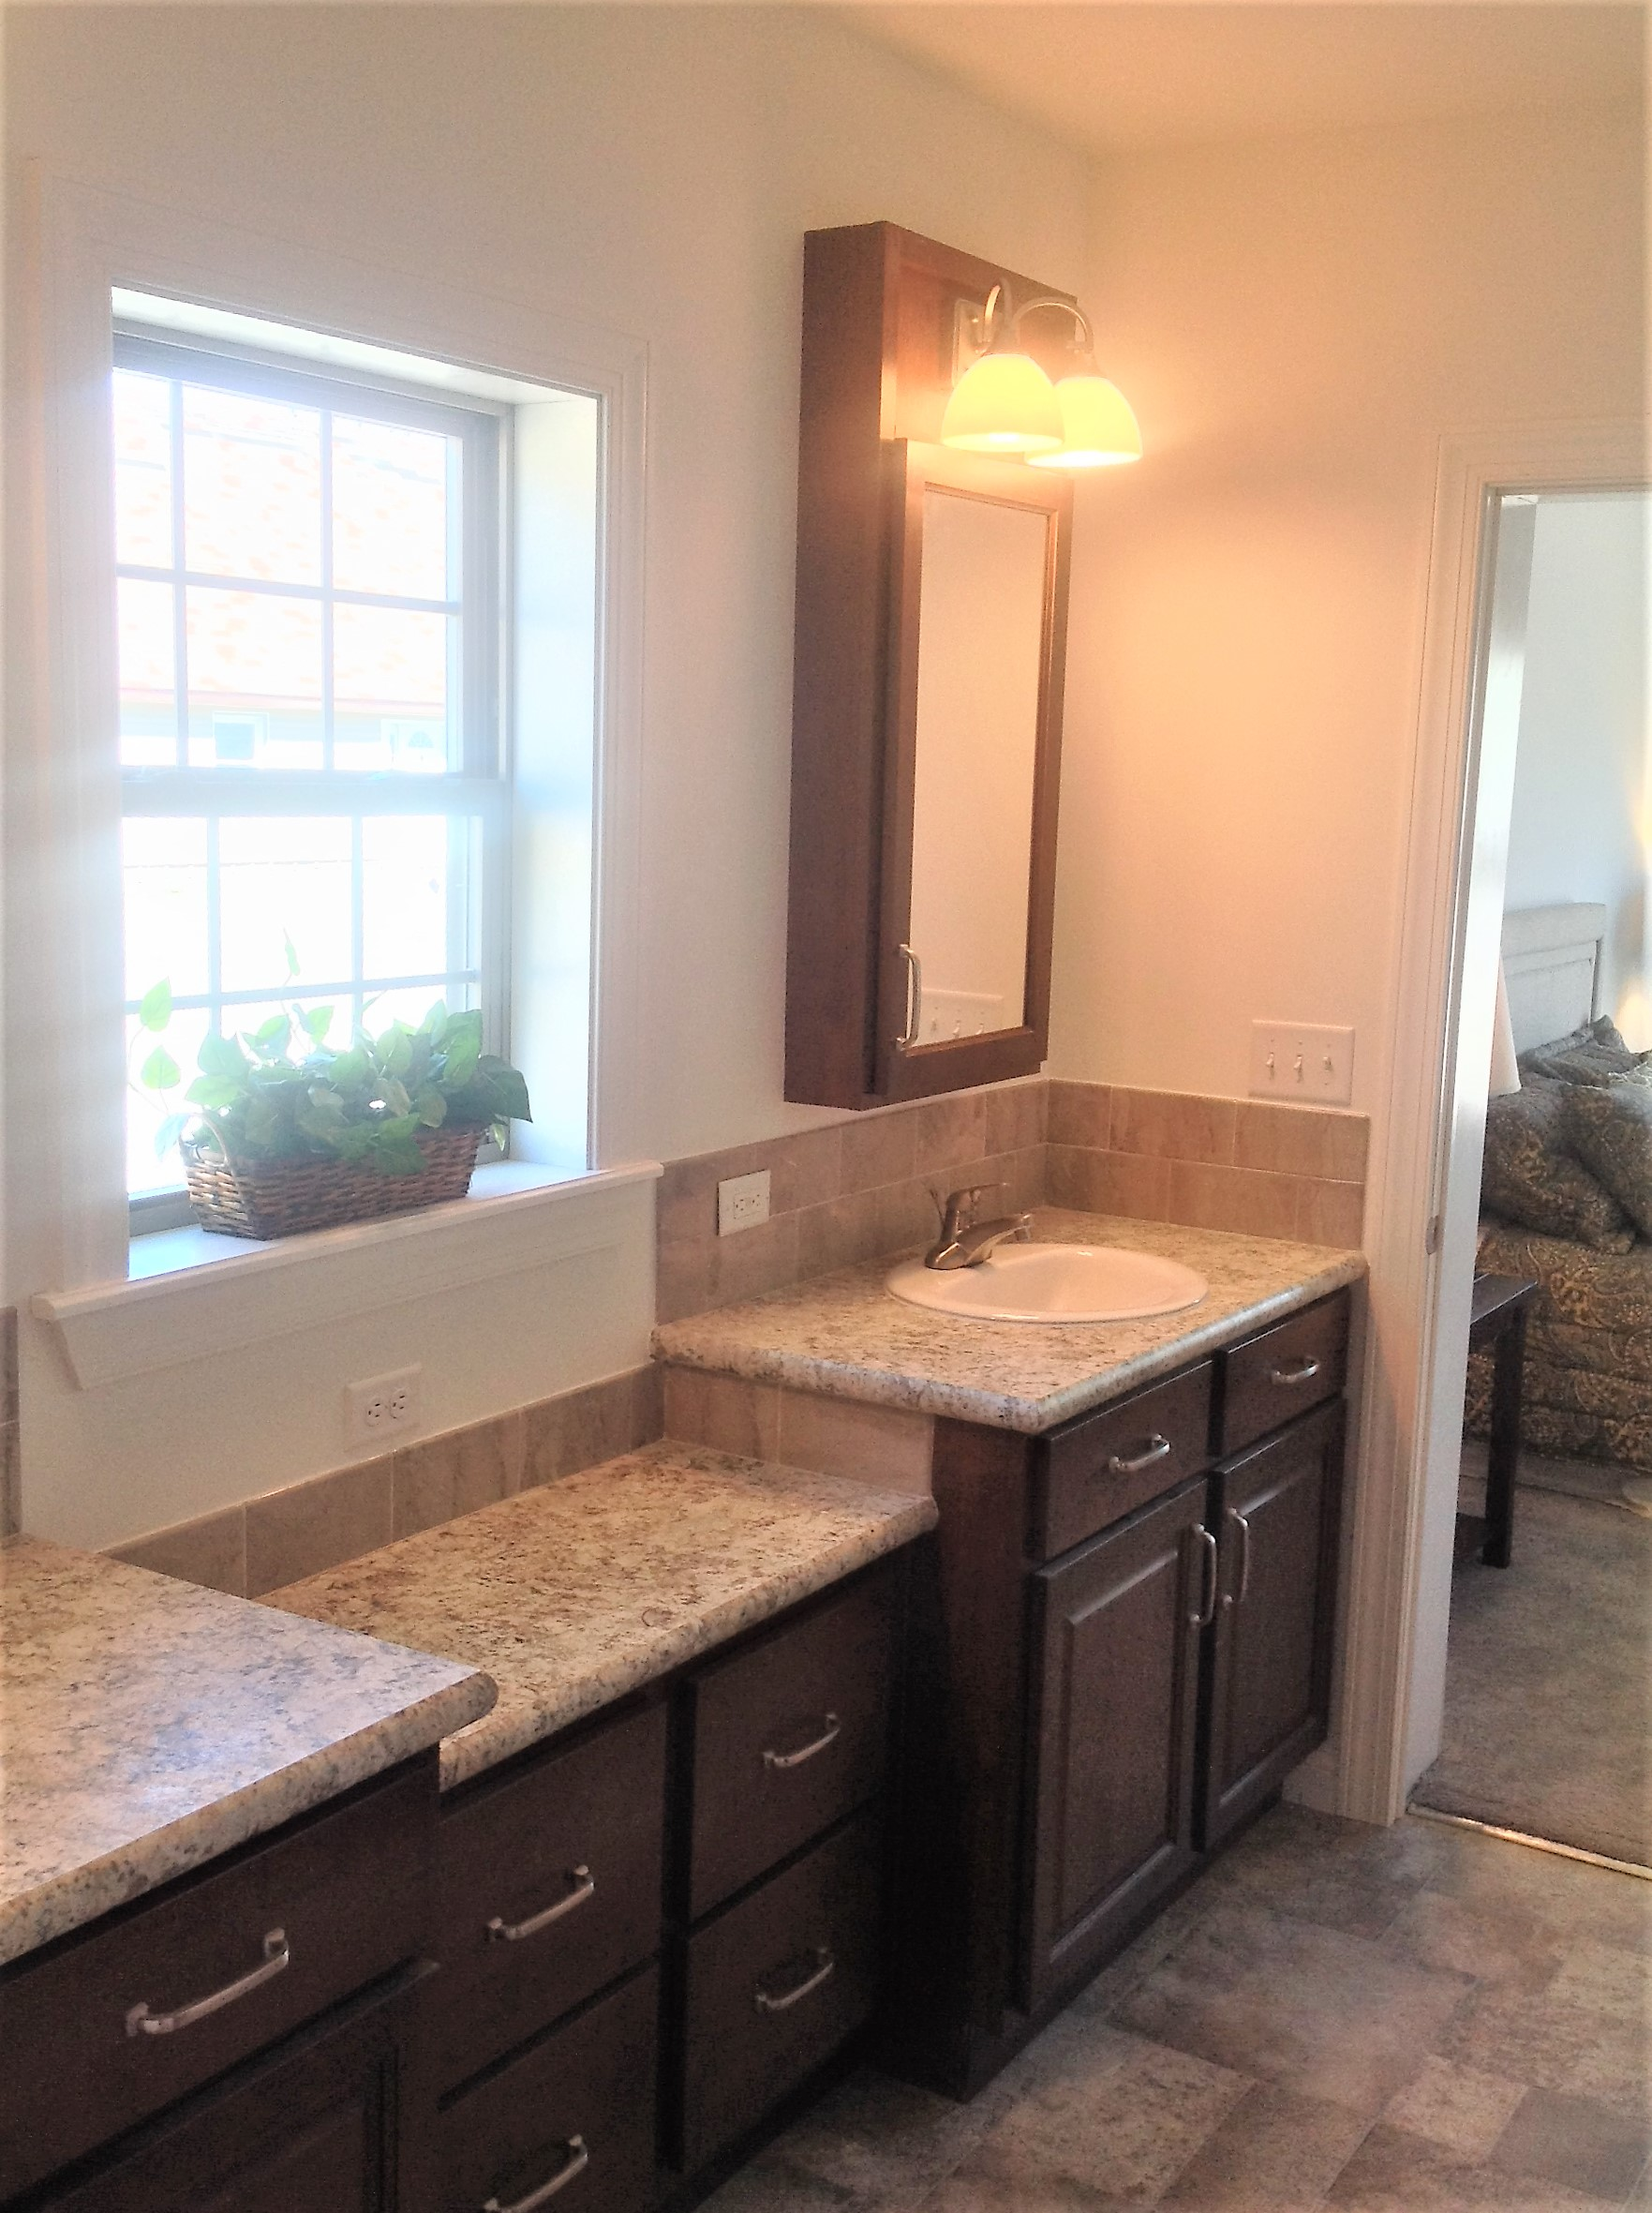 Lots of space in the master bath